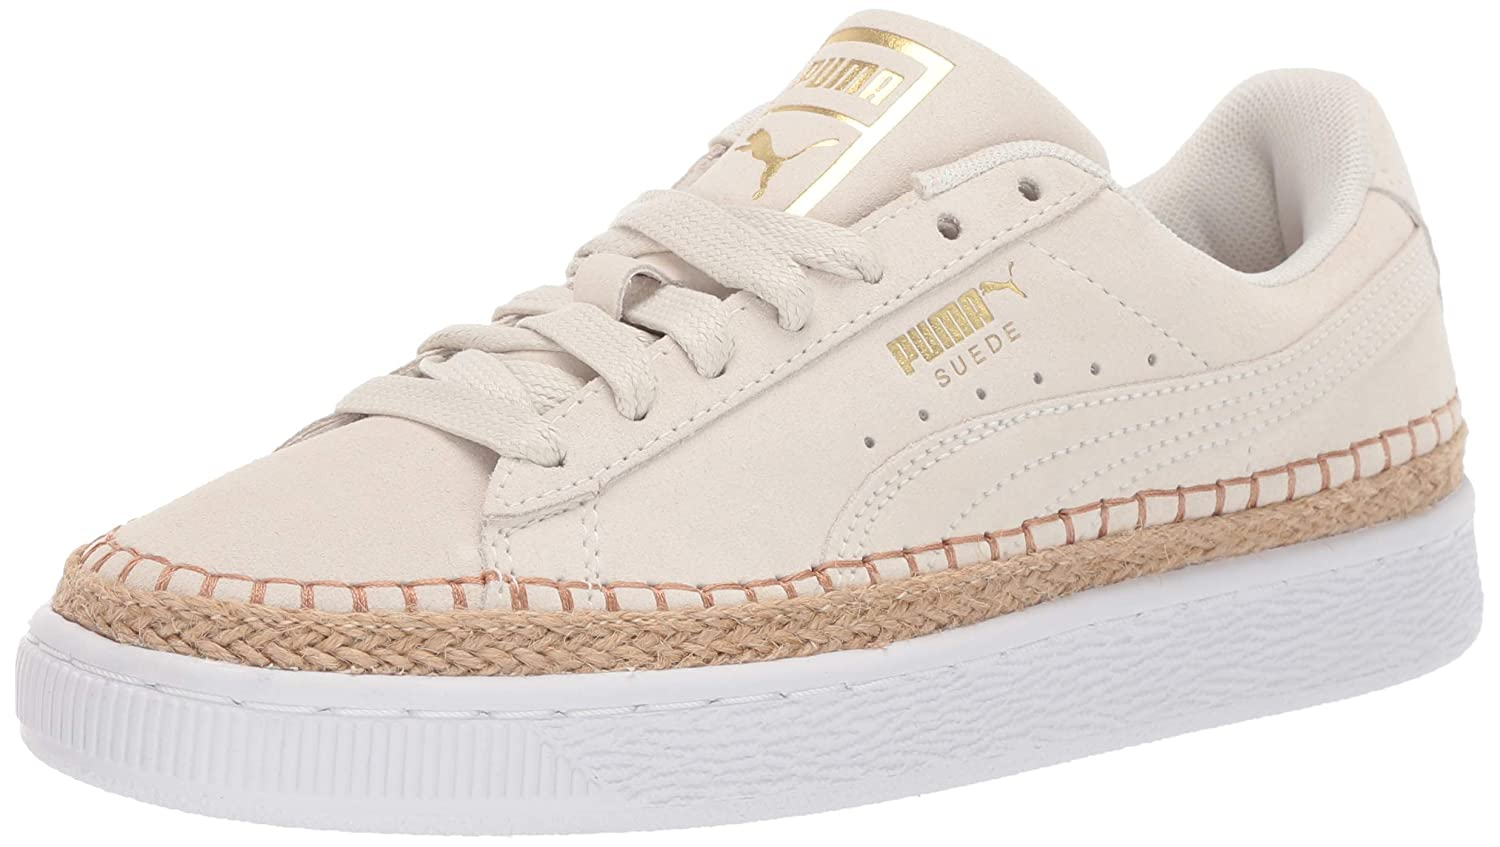 Suede Sneakerdrille Sneaker at Amazon